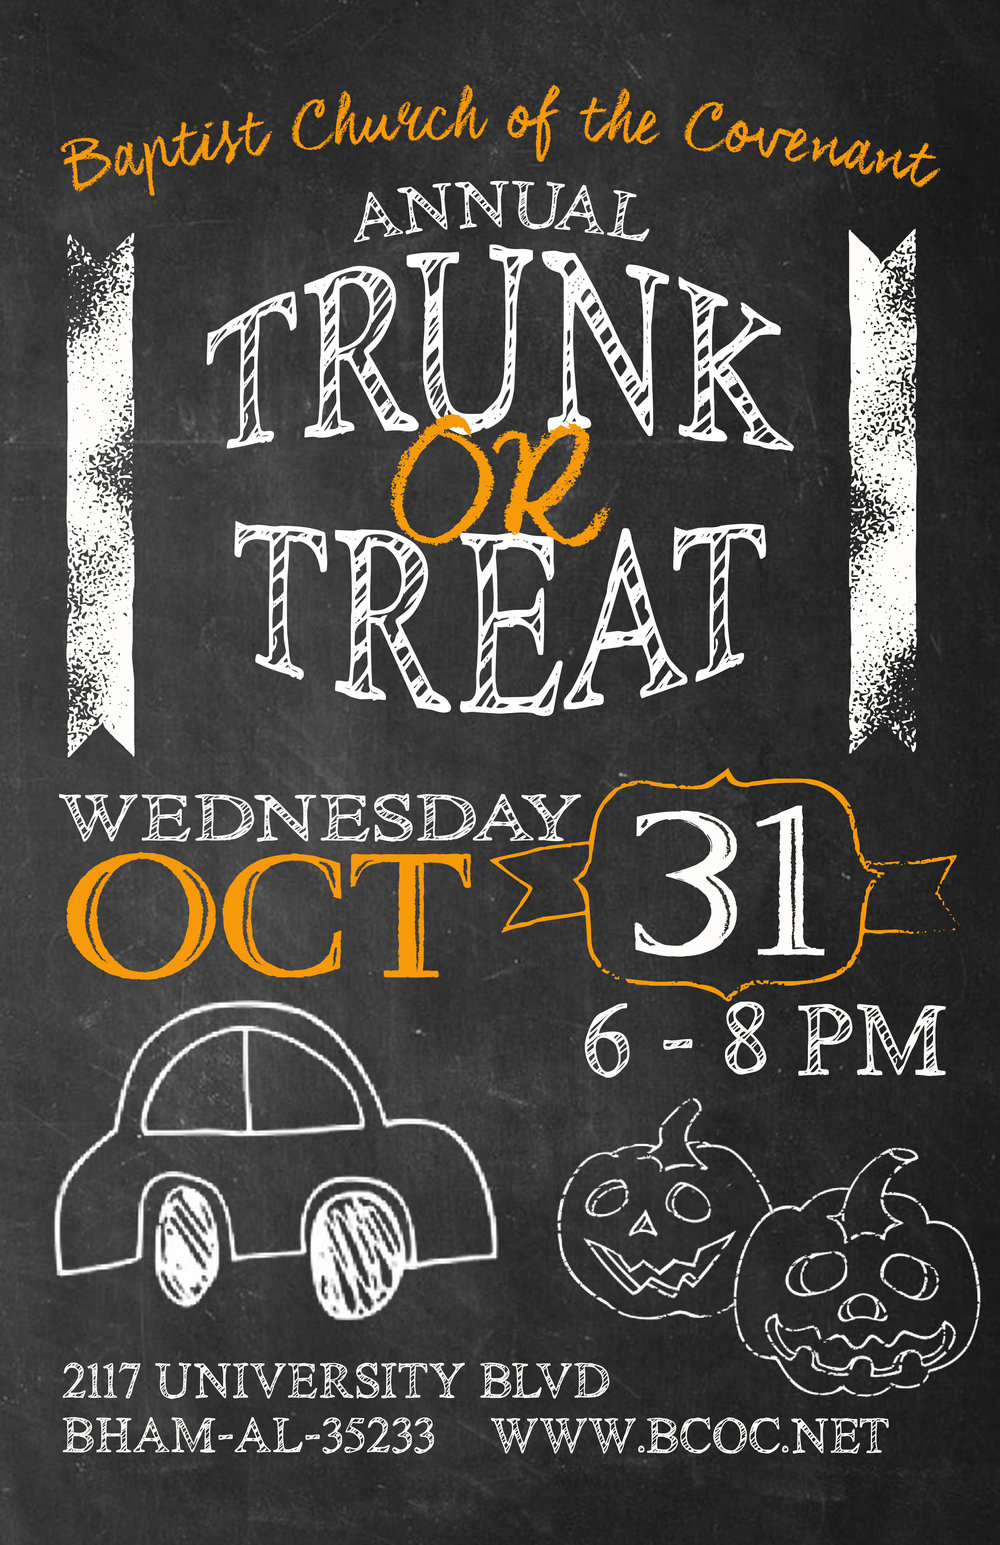 BCOC-TrunkorTreat (002).jpg